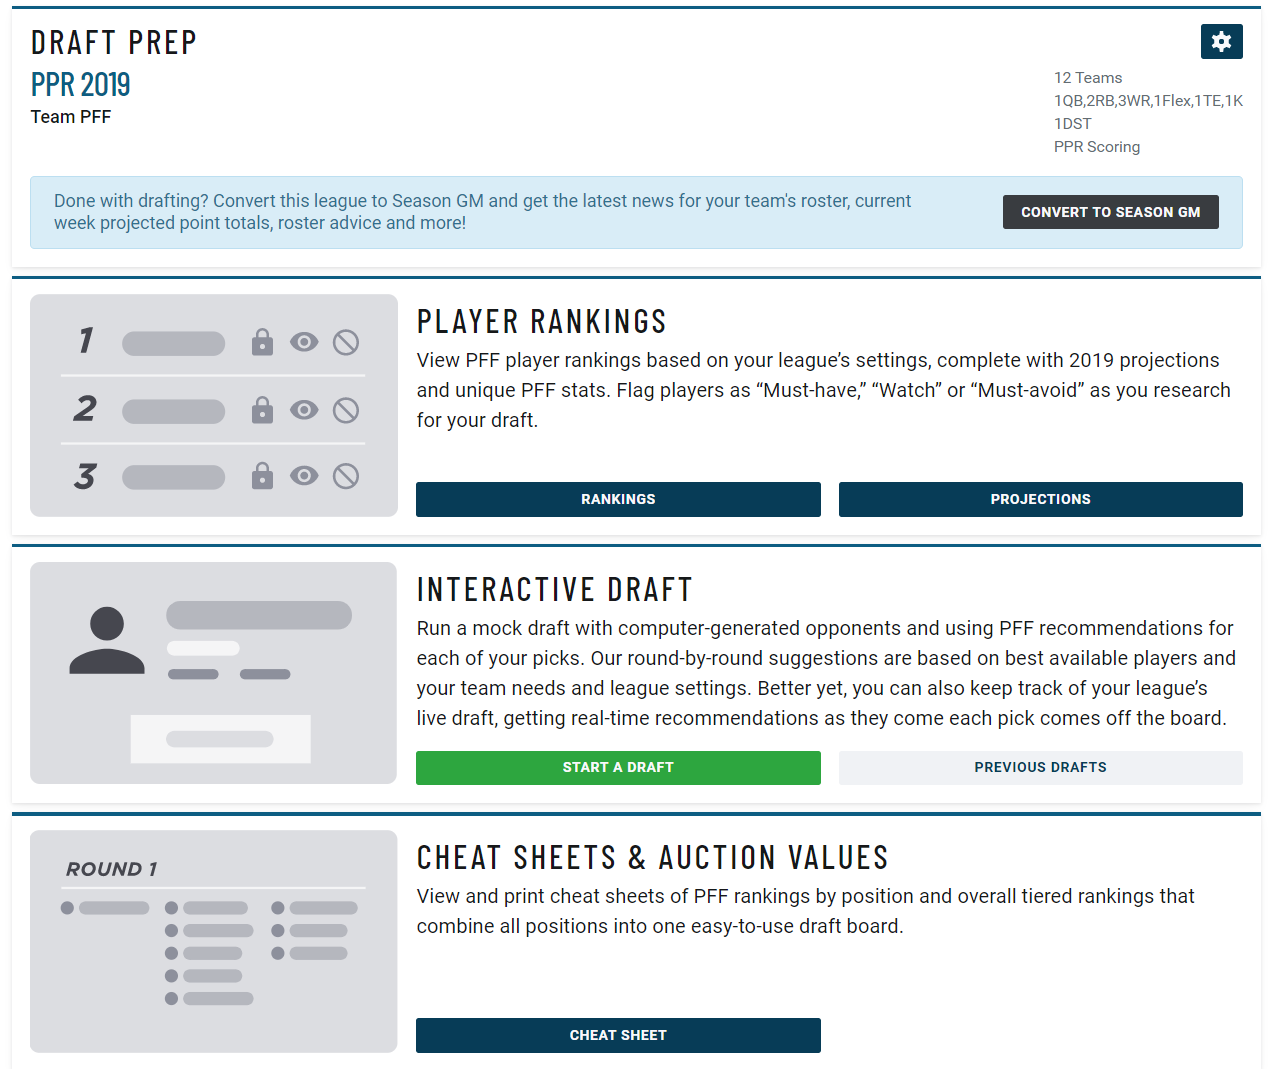 fantasy draft tools and cheat sheets